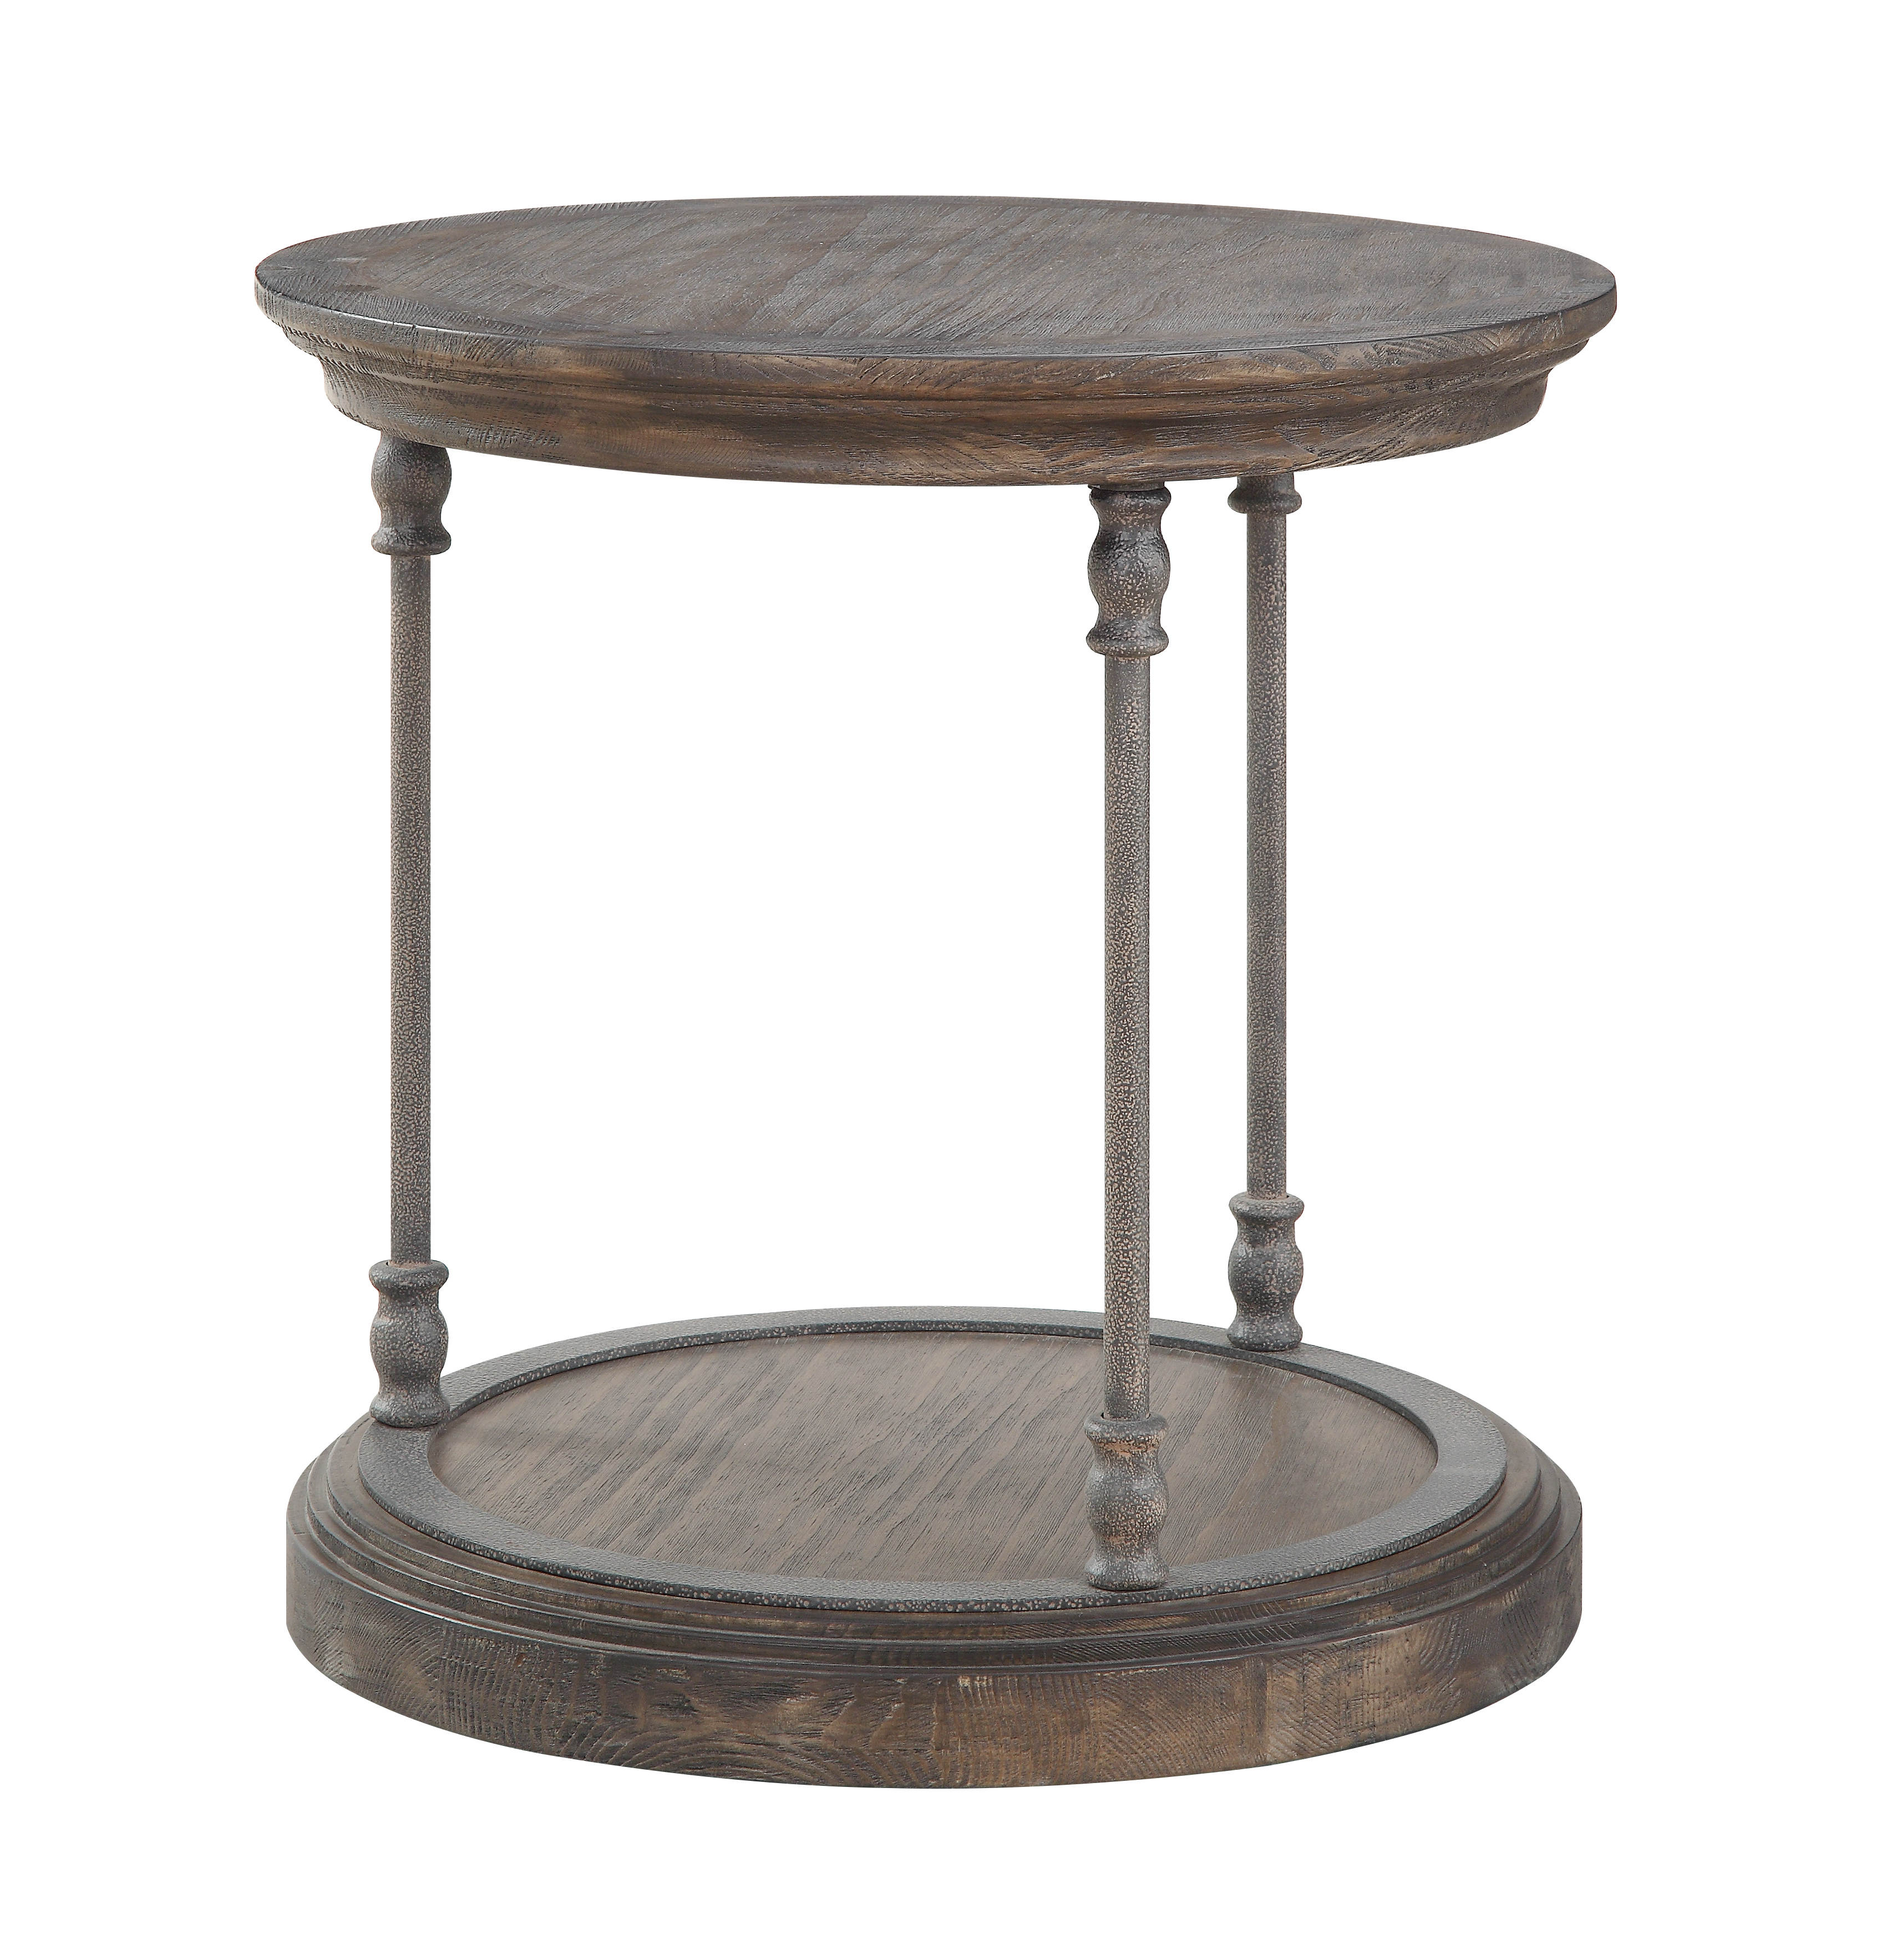 Sensational Coast To Coast Corbin Brown Round End Table Caraccident5 Cool Chair Designs And Ideas Caraccident5Info